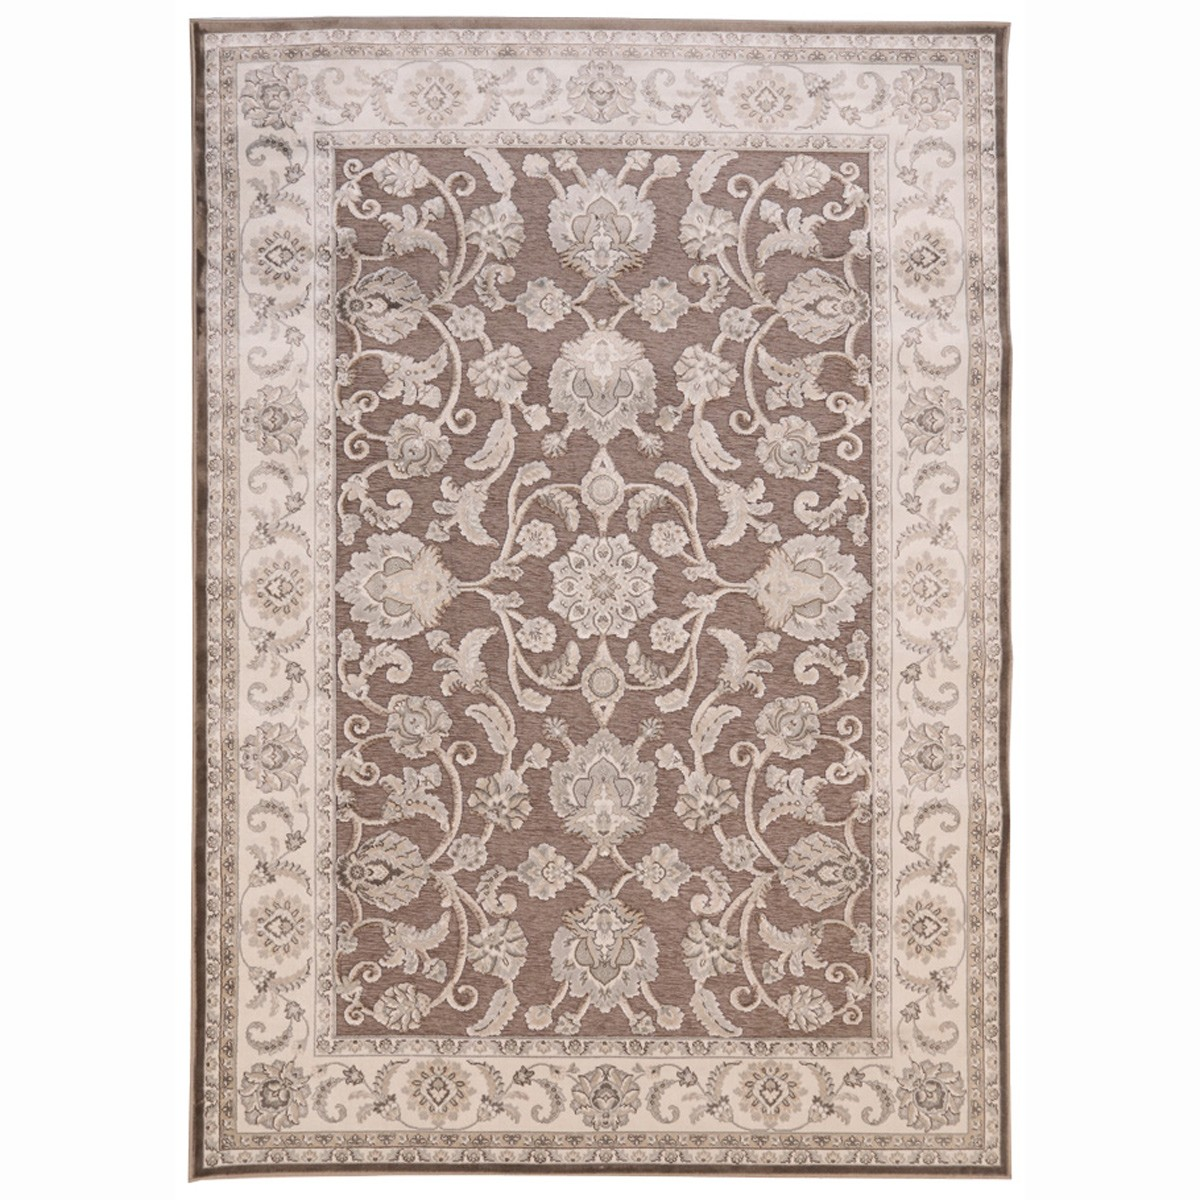 Καλοκαιρινό Χαλί (160x230) Royal Carpets Tiffany Ice 938 Vision